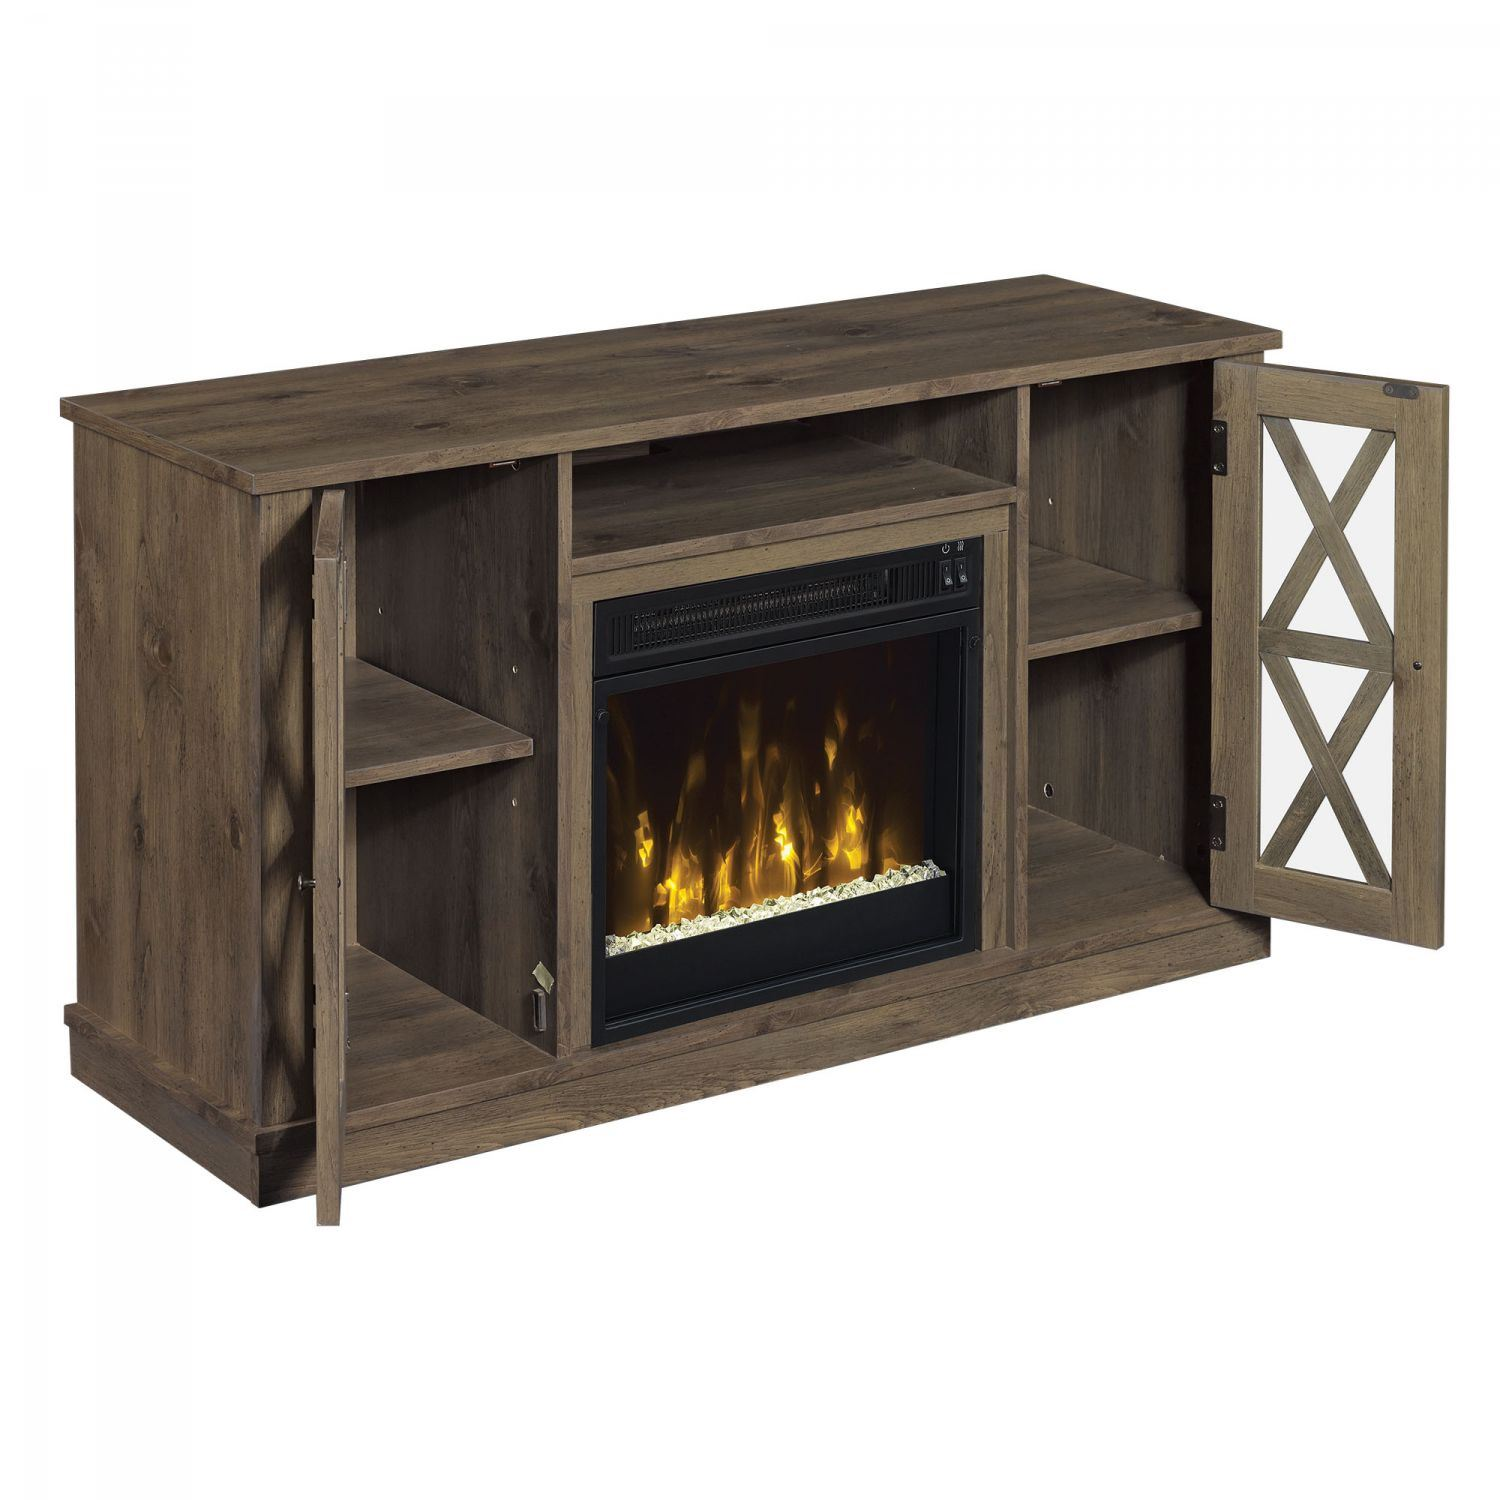 bayport tv stand with fireplace d 18mm6092 pi14s classic flame twin star afw. Black Bedroom Furniture Sets. Home Design Ideas